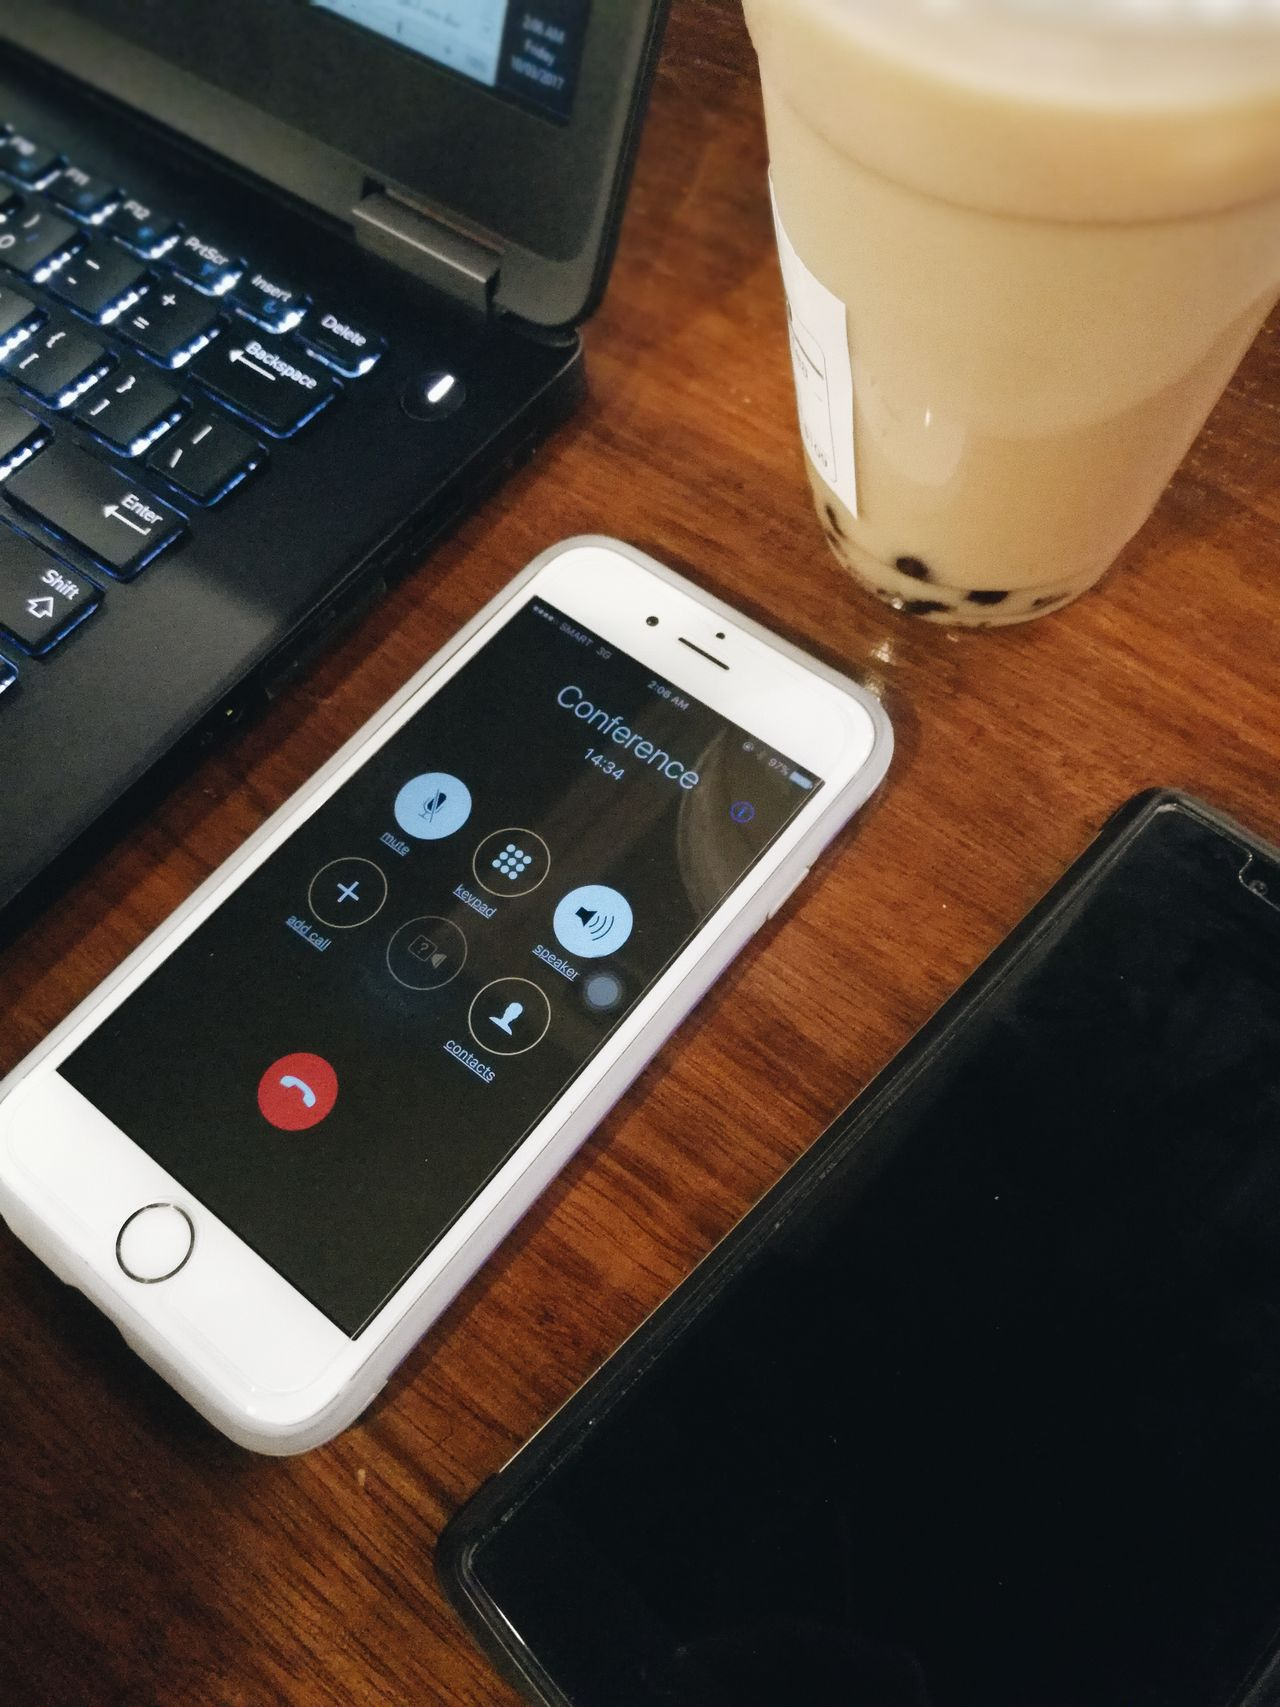 Conference Mobile Conversations IPhone Apple Mobile Phone Conference Conference Call Connected Call Meeting Telecommuting Work From Home